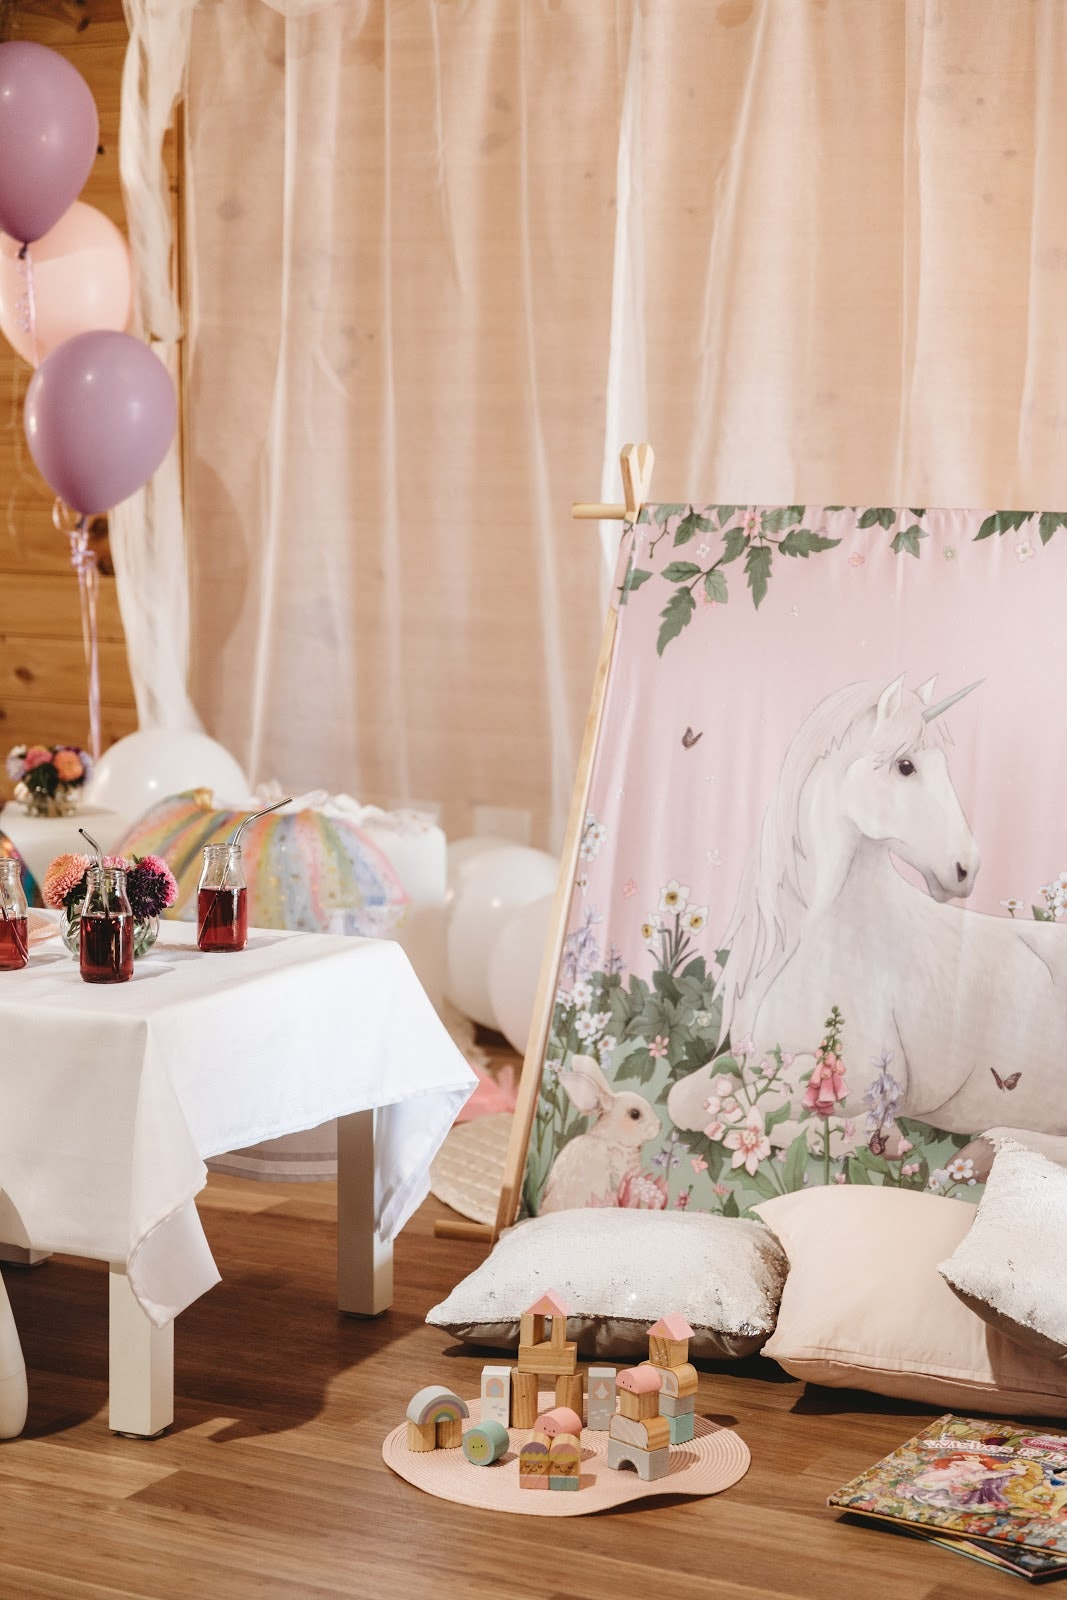 Playroom set up for children with unicorn teepee and toys and drinks